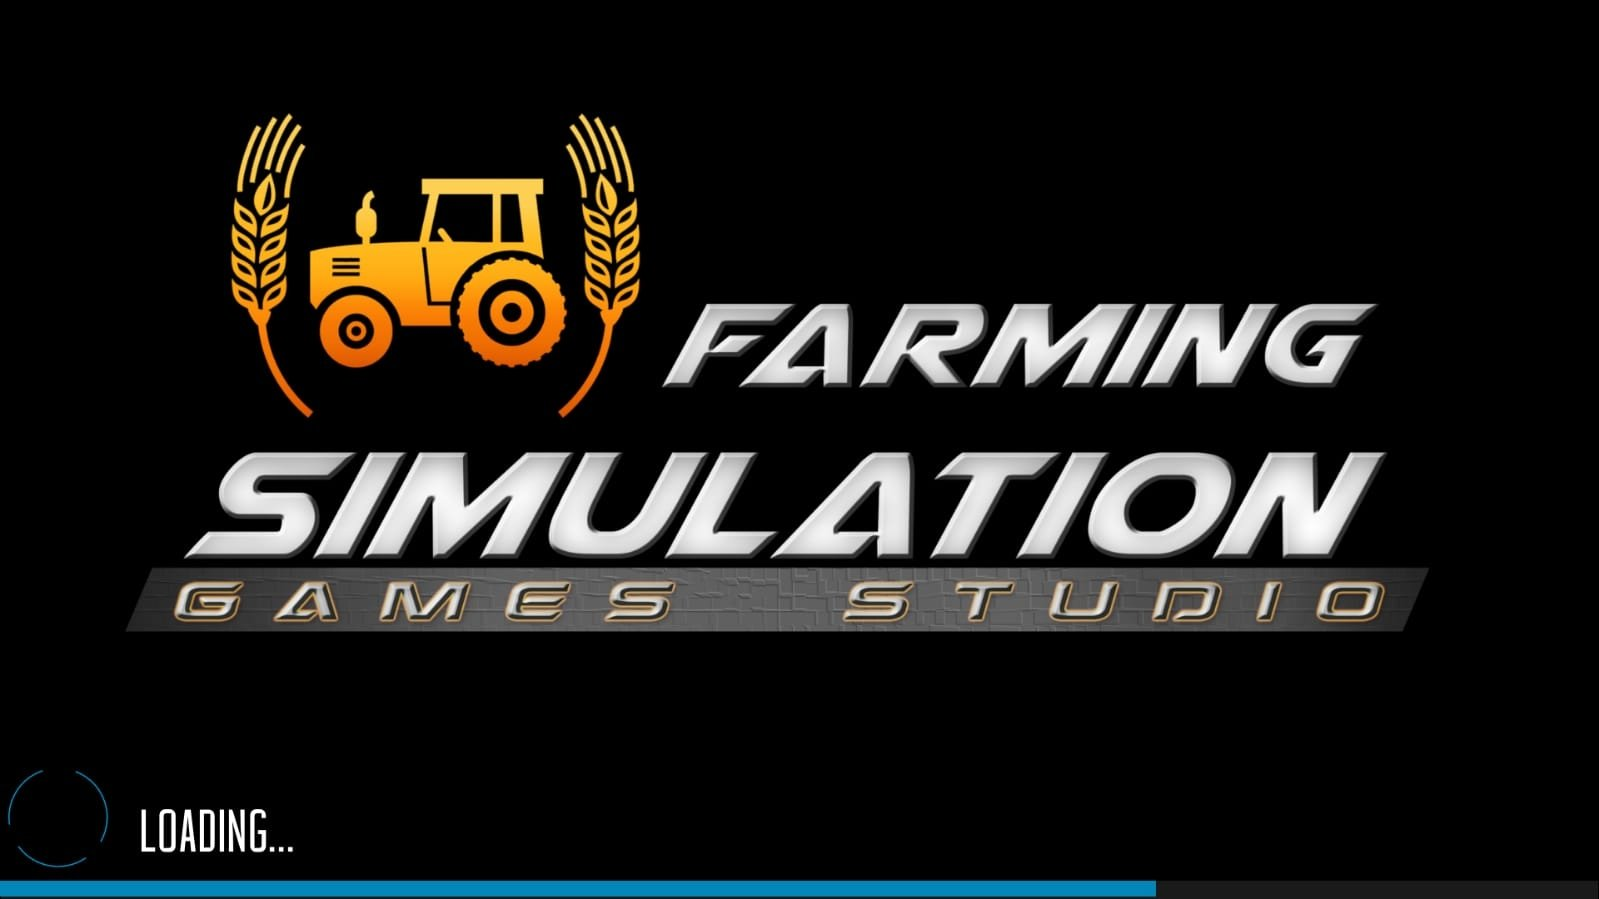 Farming Simulator 19 1 1 - Descargar para Android APK Gratis